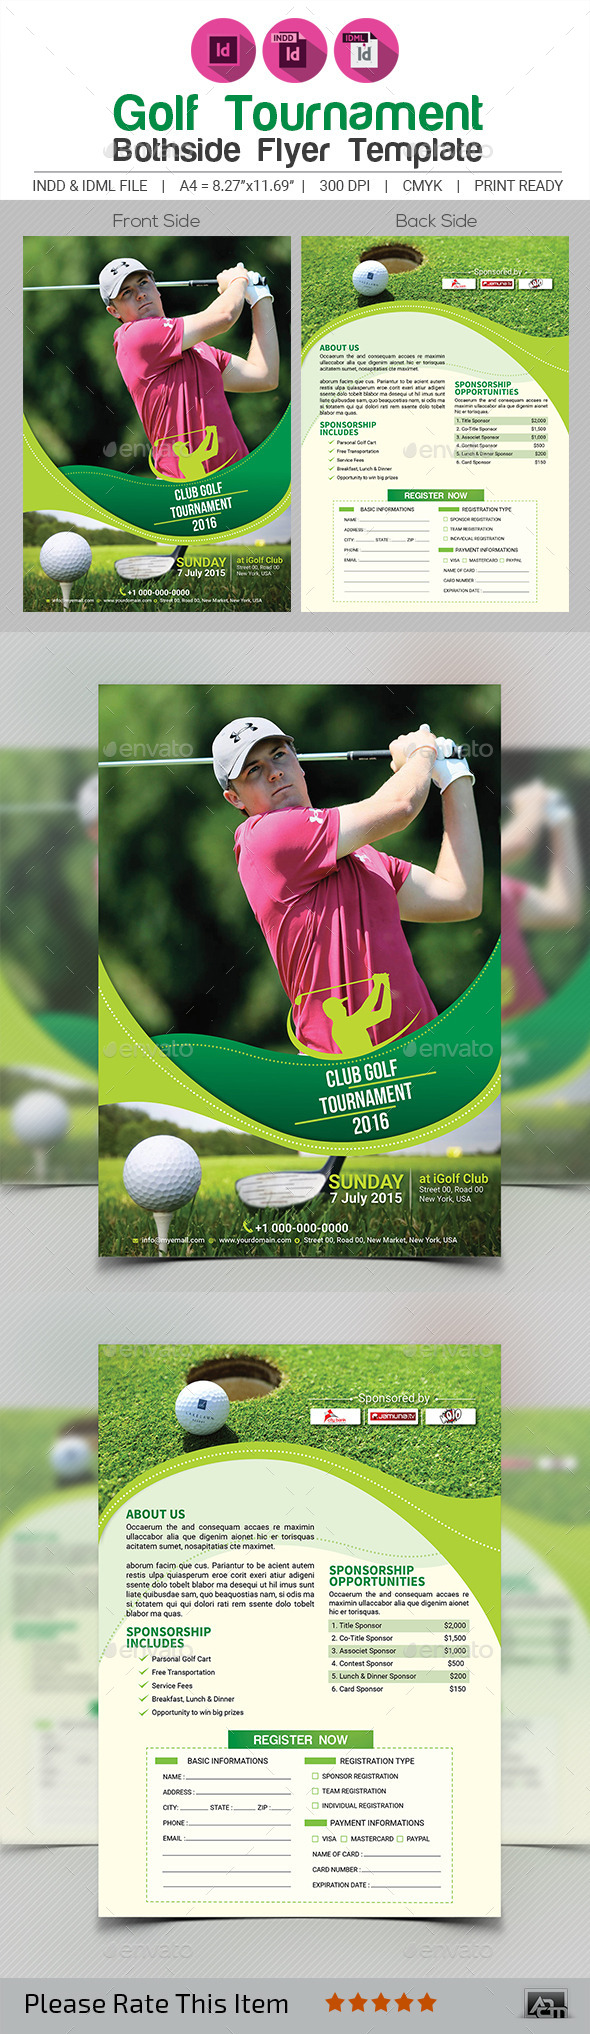 Golf Tournament Flyer Template V4   Sports Events